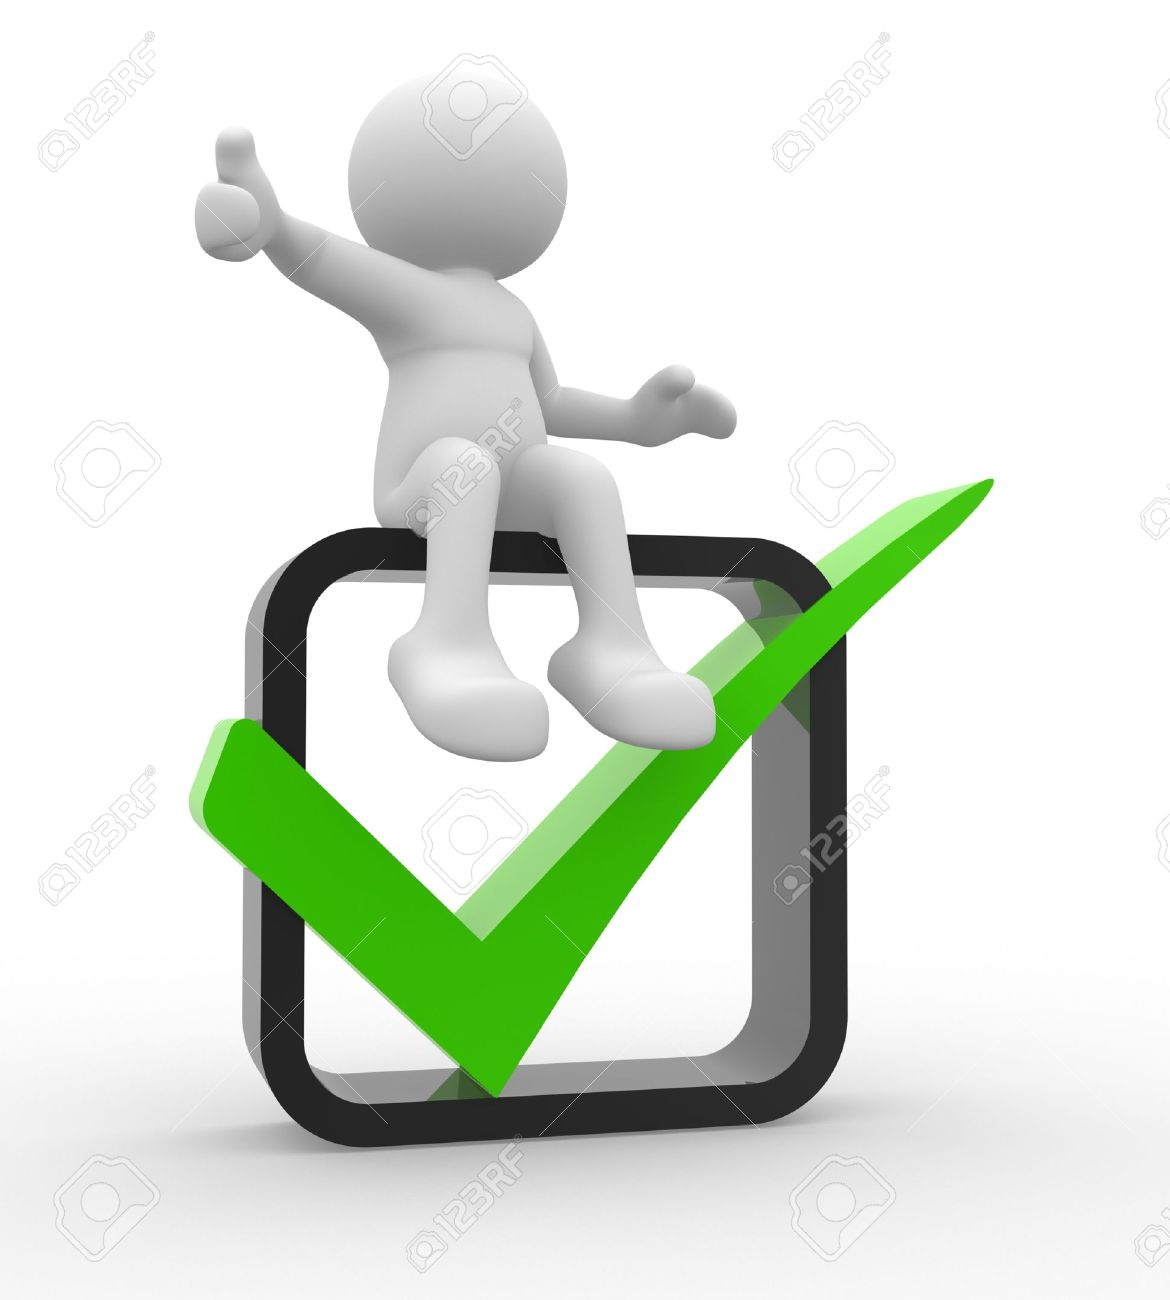 3d people -  man, person showing thumb up with green check mark in box. Stock Photo - 14814927